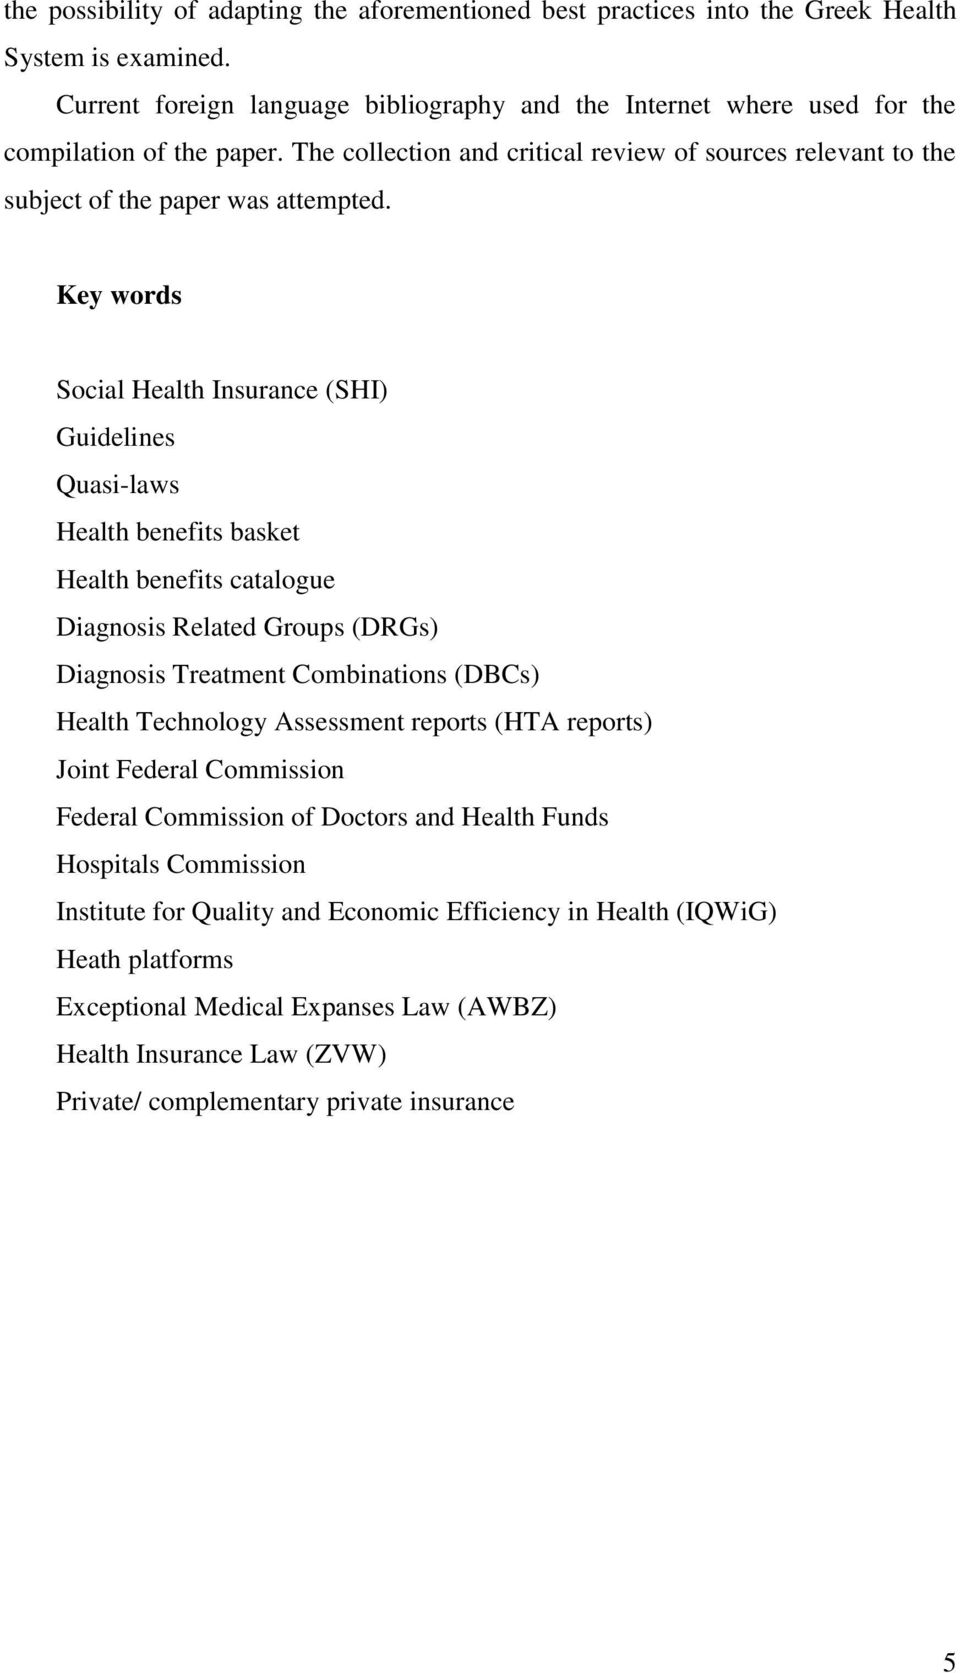 Key words Social Health Insurance (SHI) Guidelines Quasi-laws Health benefits basket Health benefits catalogue Diagnosis Related Groups (DRGs) Diagnosis Treatment Combinations (DBCs) Health